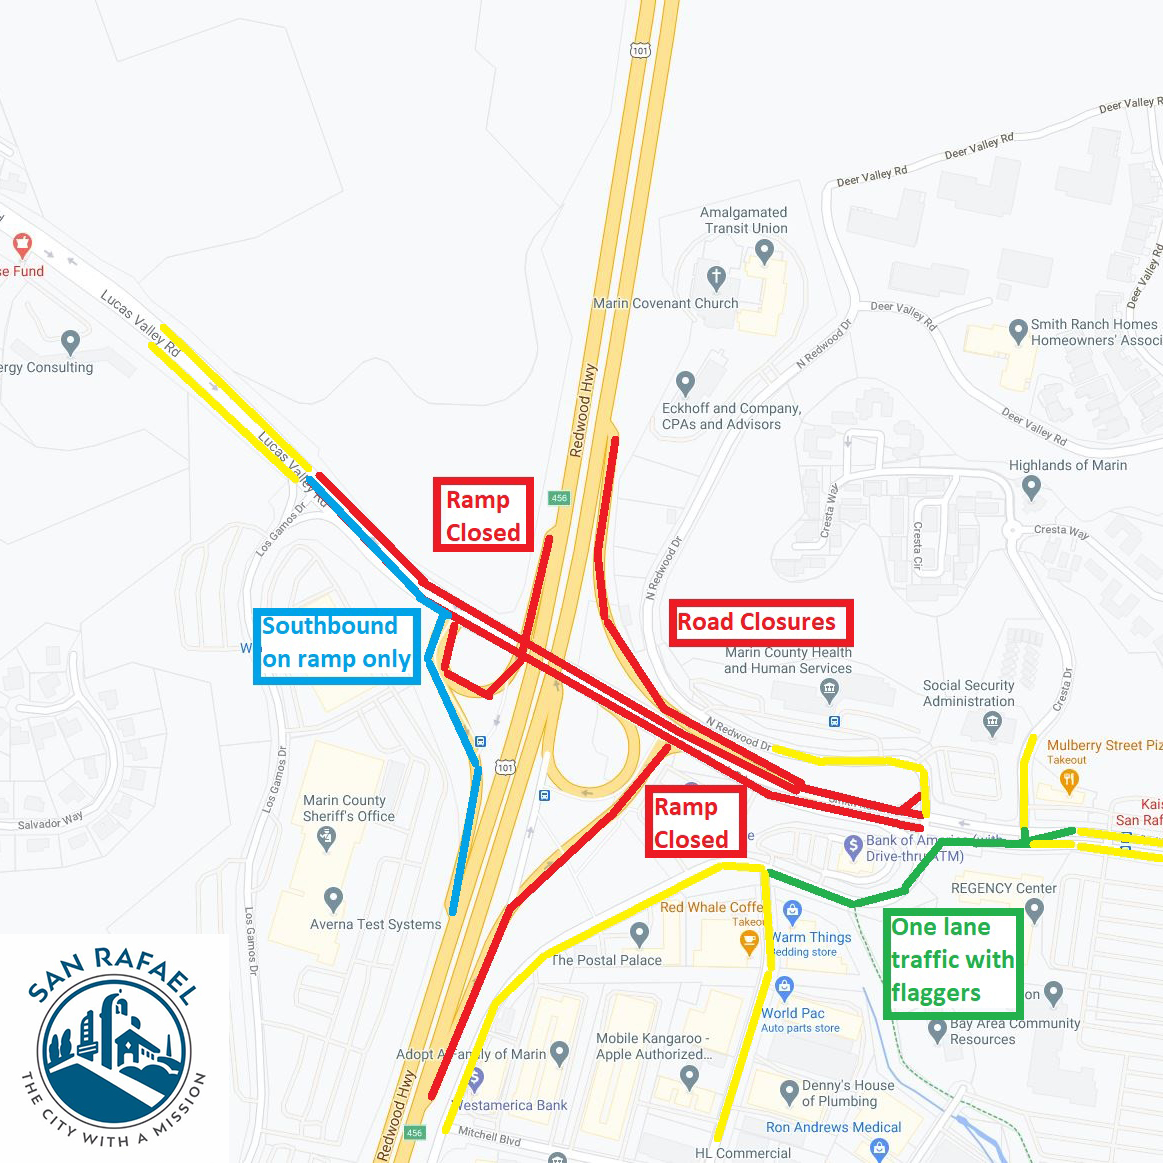 #RoadWork Alert: From 9/28-10/2, @SanRafaelDPW will be repaving sections of Smith Ranch Road & Lucas Valley Road near HWY 101.  This'll be nighttime (9PM-6AM) only. Road closures & #traffic detours will be in place during the night work.  #MarinCounty @CaltransD4 @CityofSanRafael